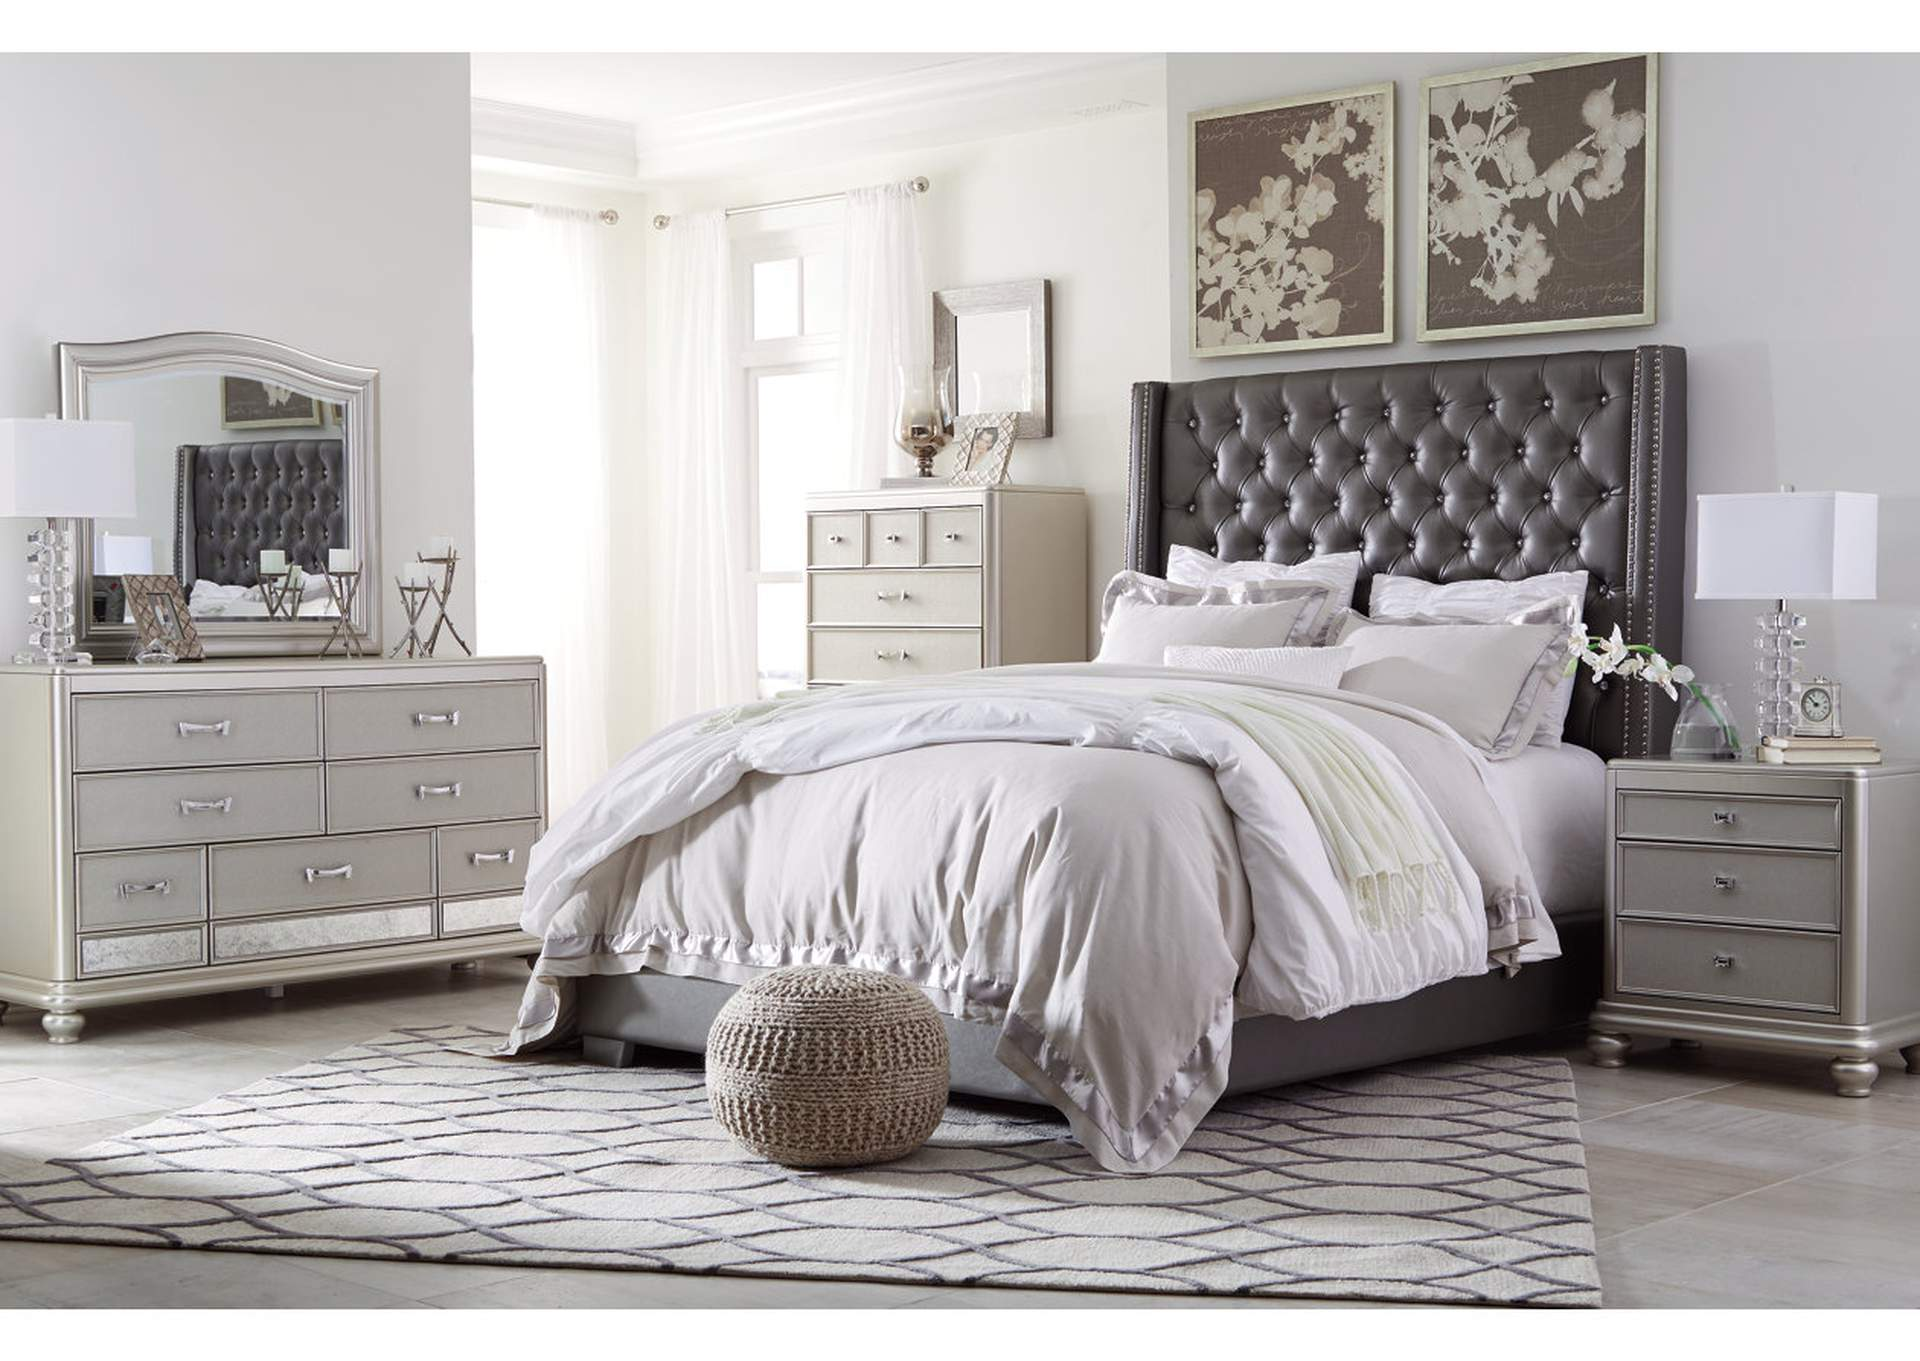 Coralayne Gray Queen Upholstered Bed w/Dresser, Mirror & Drawer Chest,Signature Design By Ashley